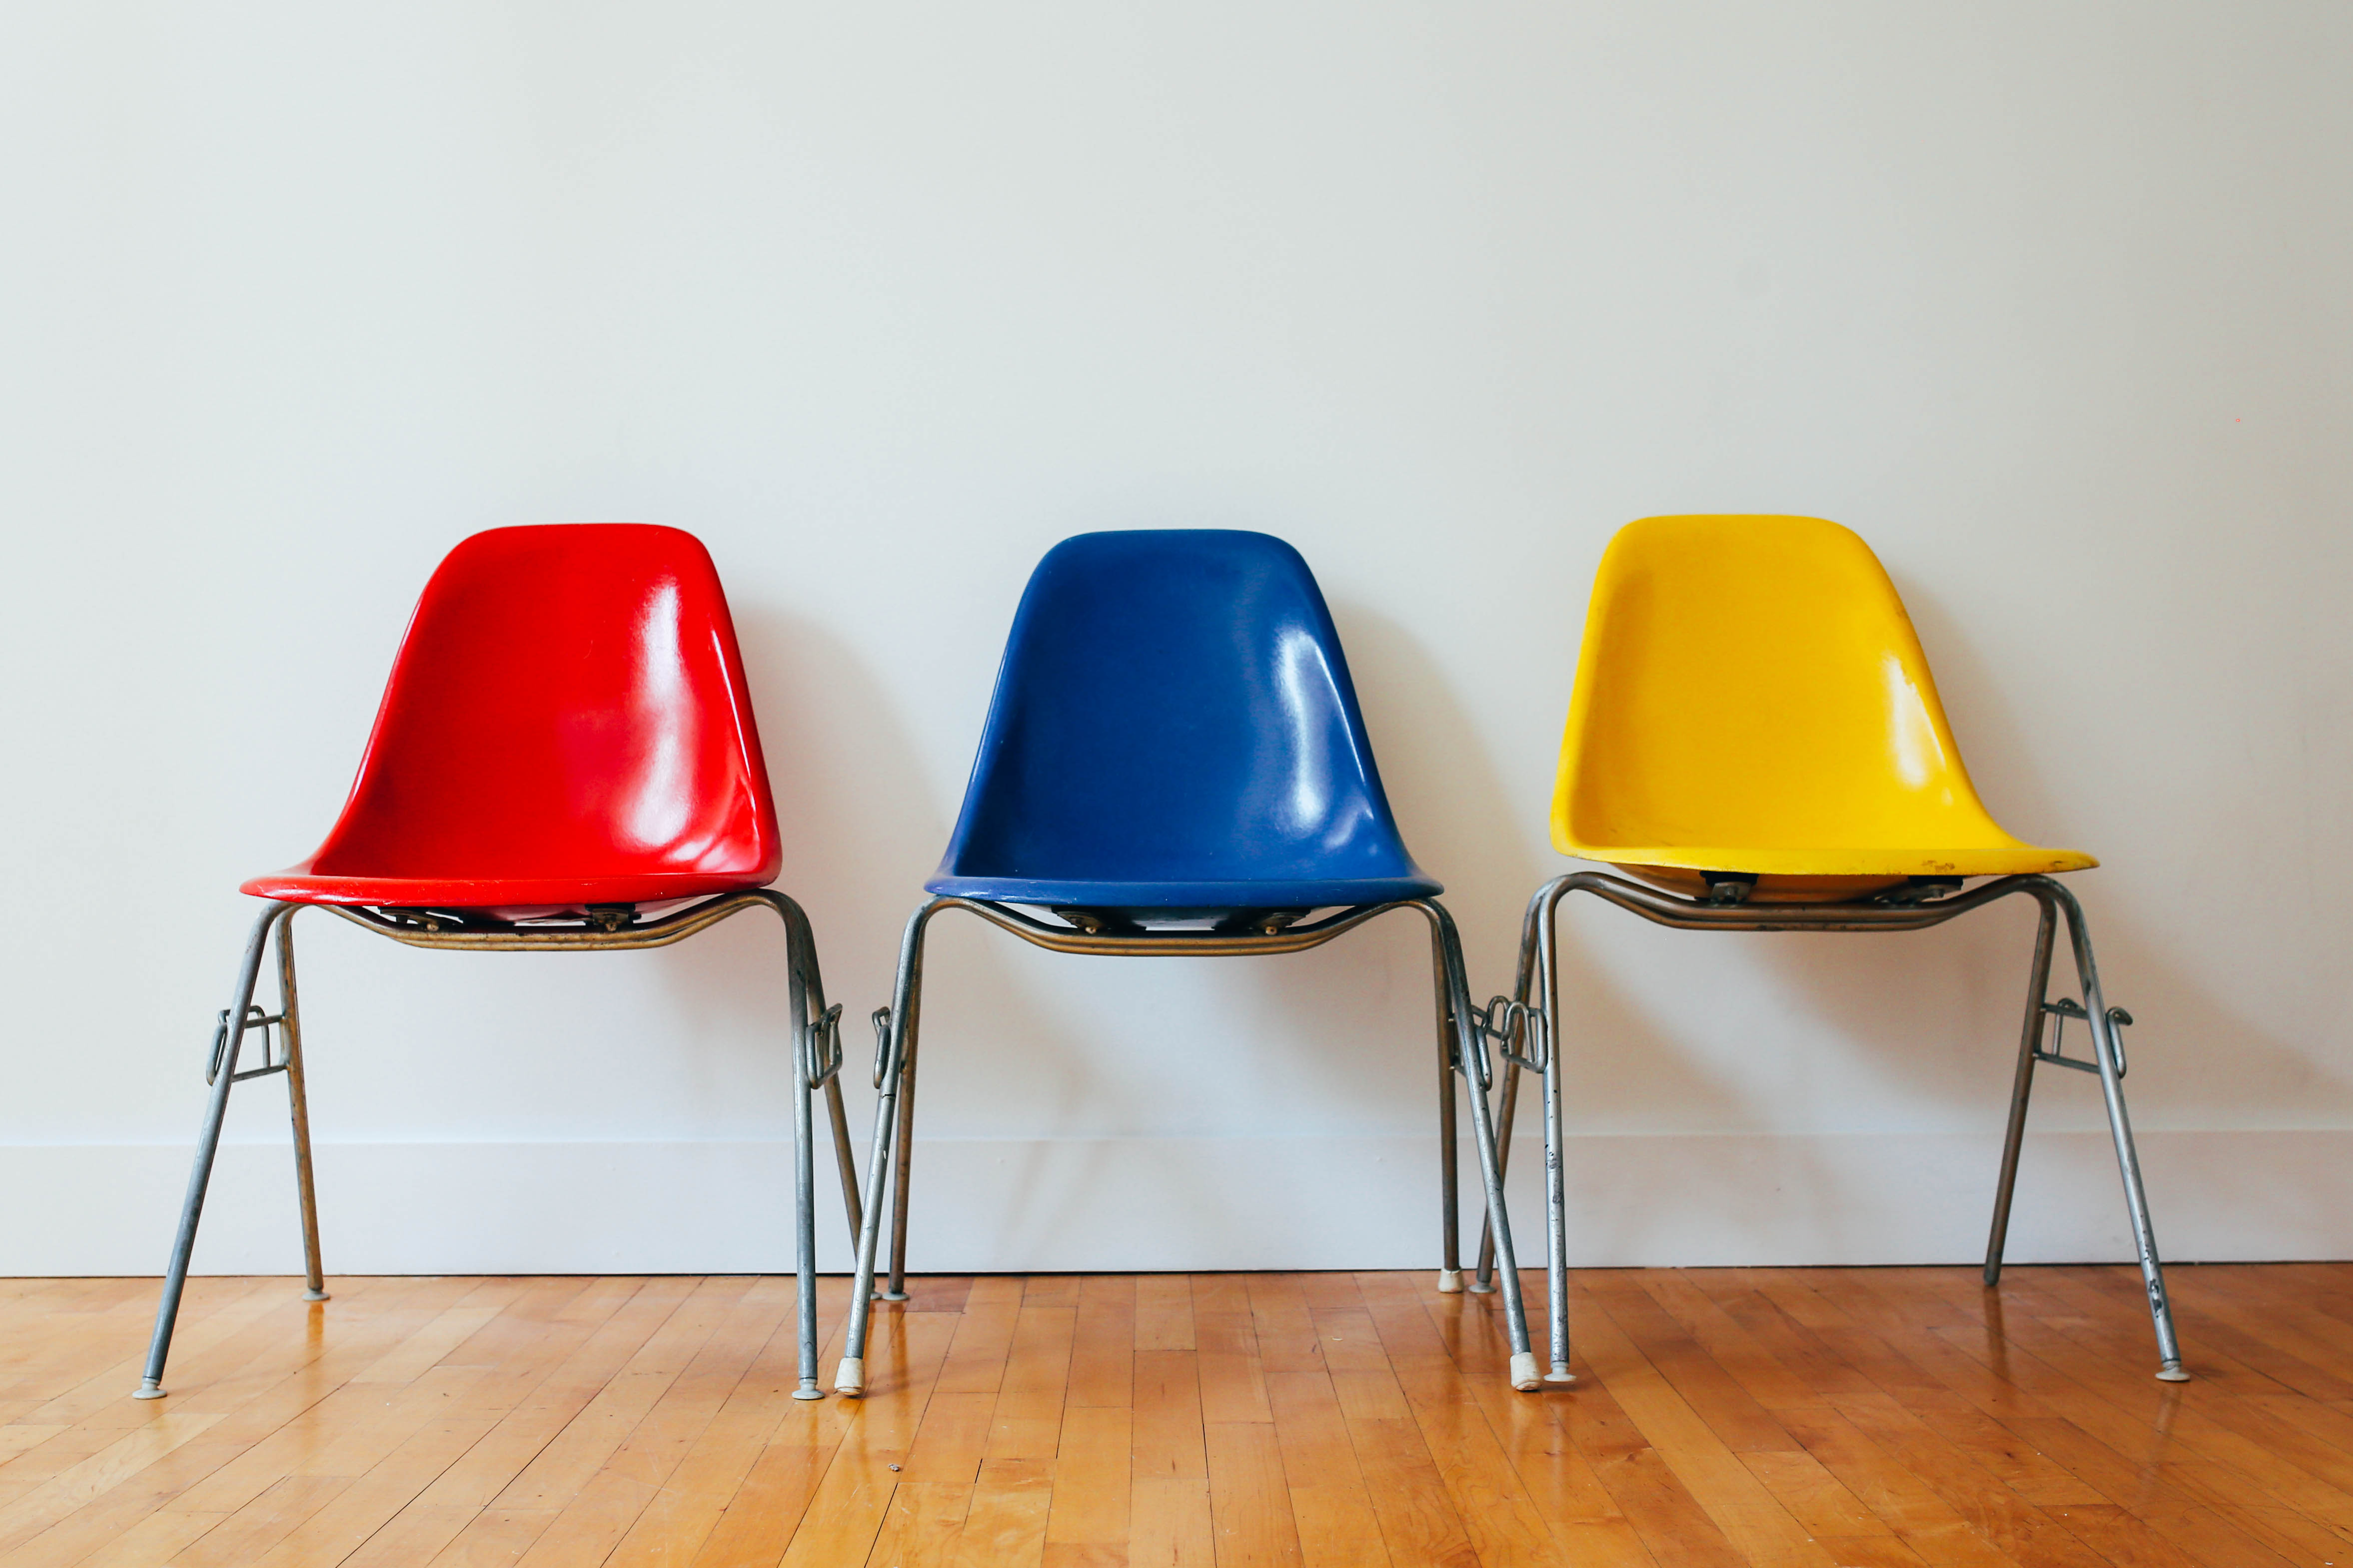 colorful chairs, individualize merchandise, unique, millennials, variety, marketing to millennials, selling to millennials, garden media group